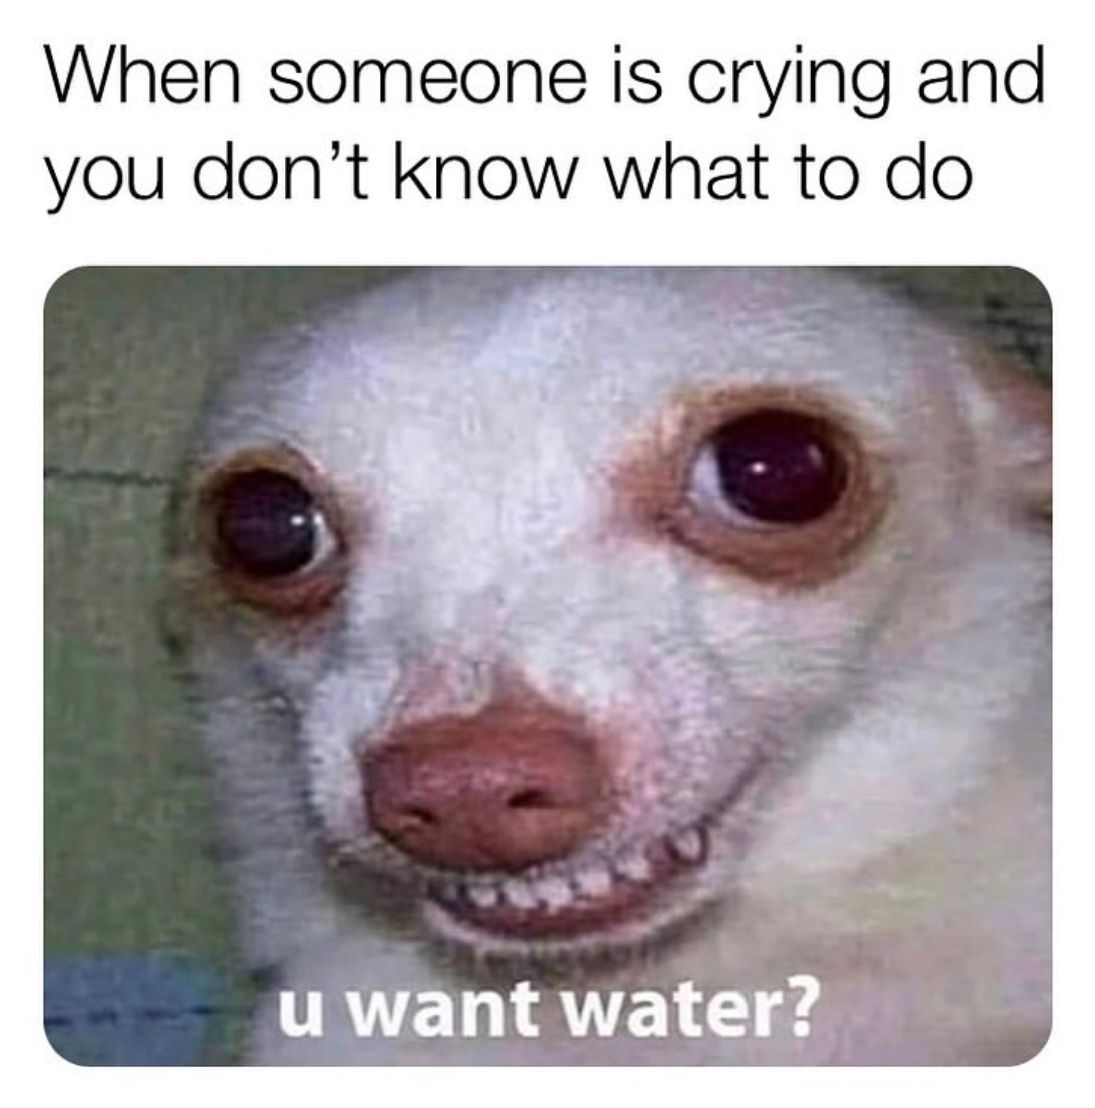 30 Relatable Memes To Brighten Your Day The Xo Factor In 2020 Funny Instagram Memes Funny Memes Tumblr Funny Animal Jokes